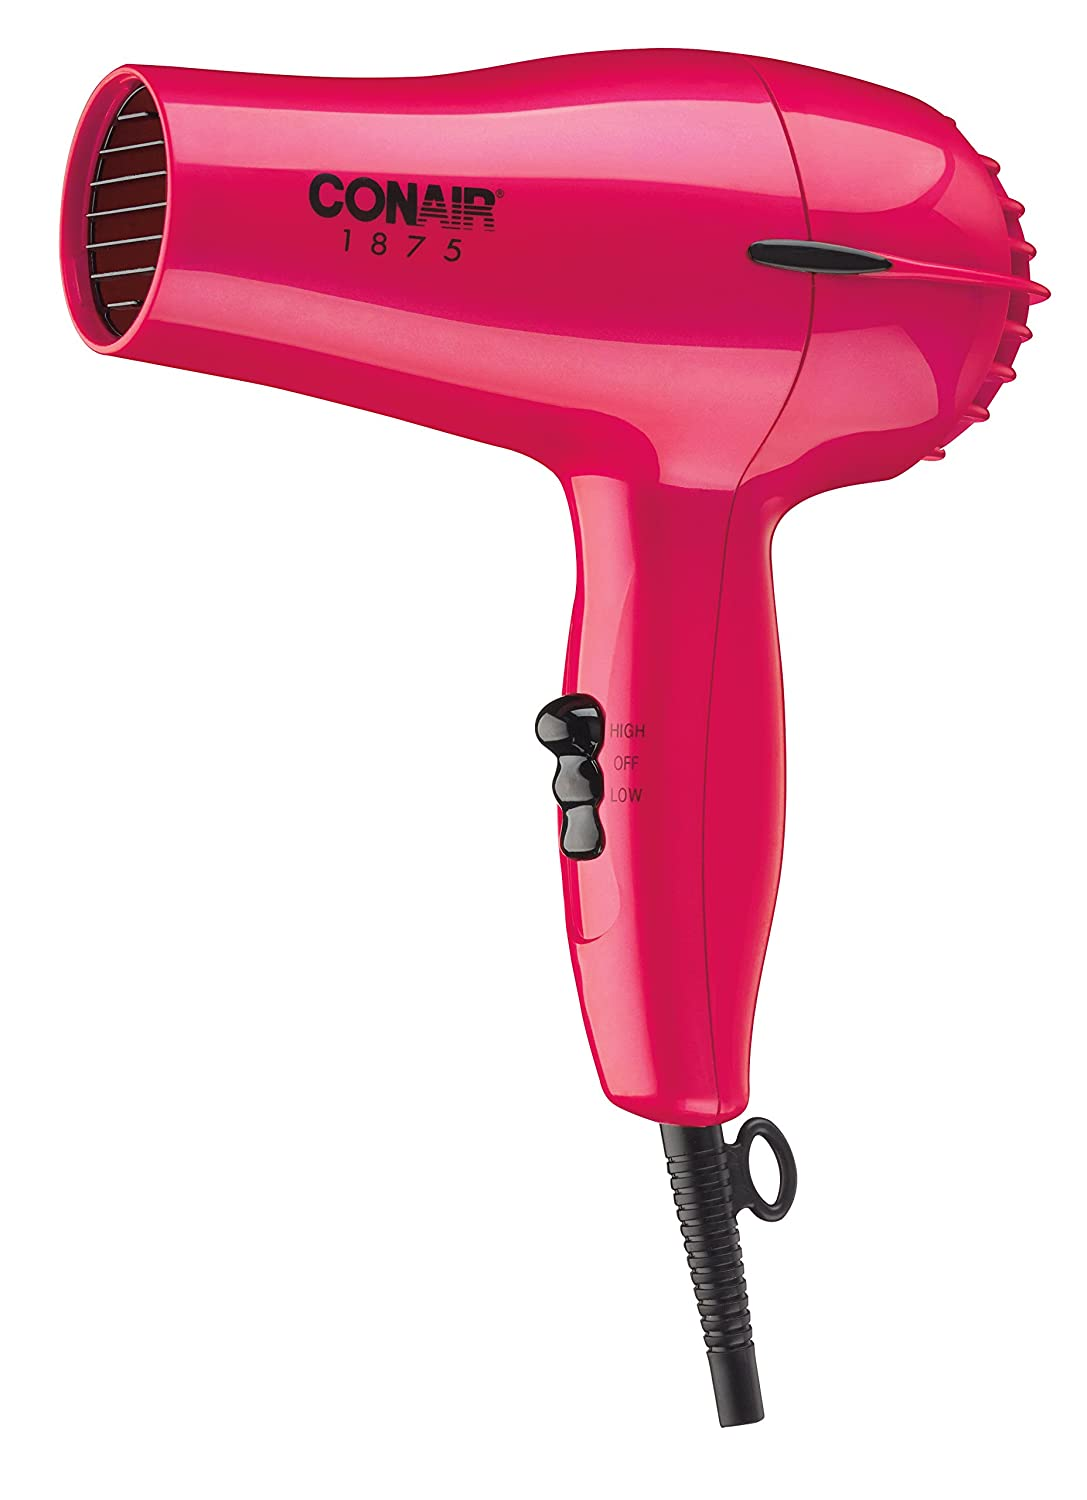 Conair 1875 Watt Mid-Size Hair Dryer; Red 247AM